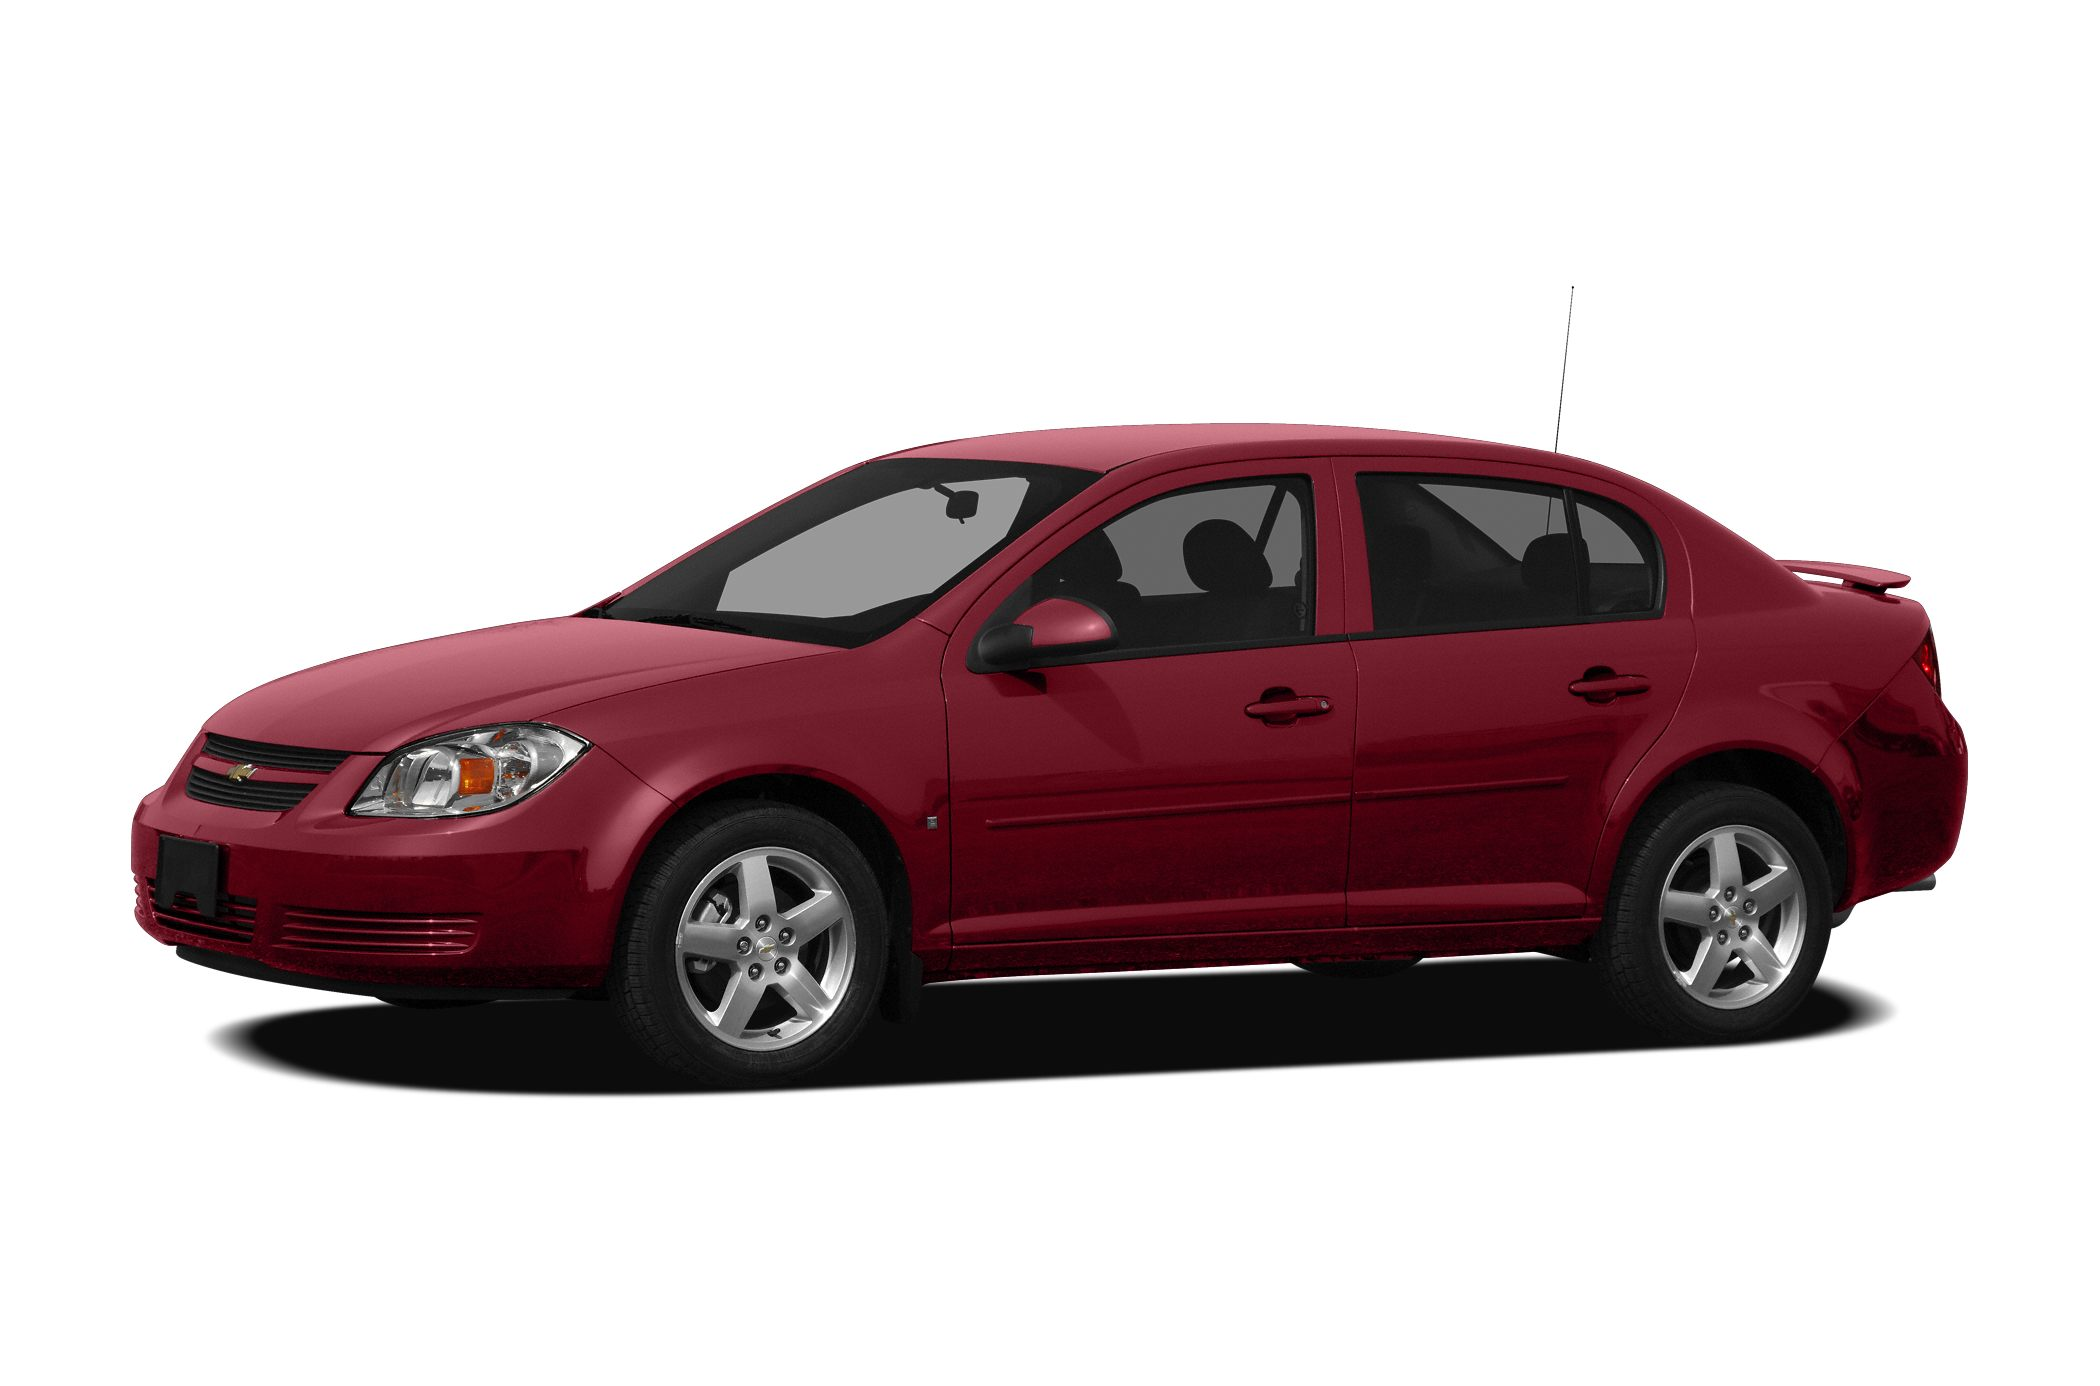 2010 Chevrolet Cobalt LT Safety comes first with traction control and side air bag system in this